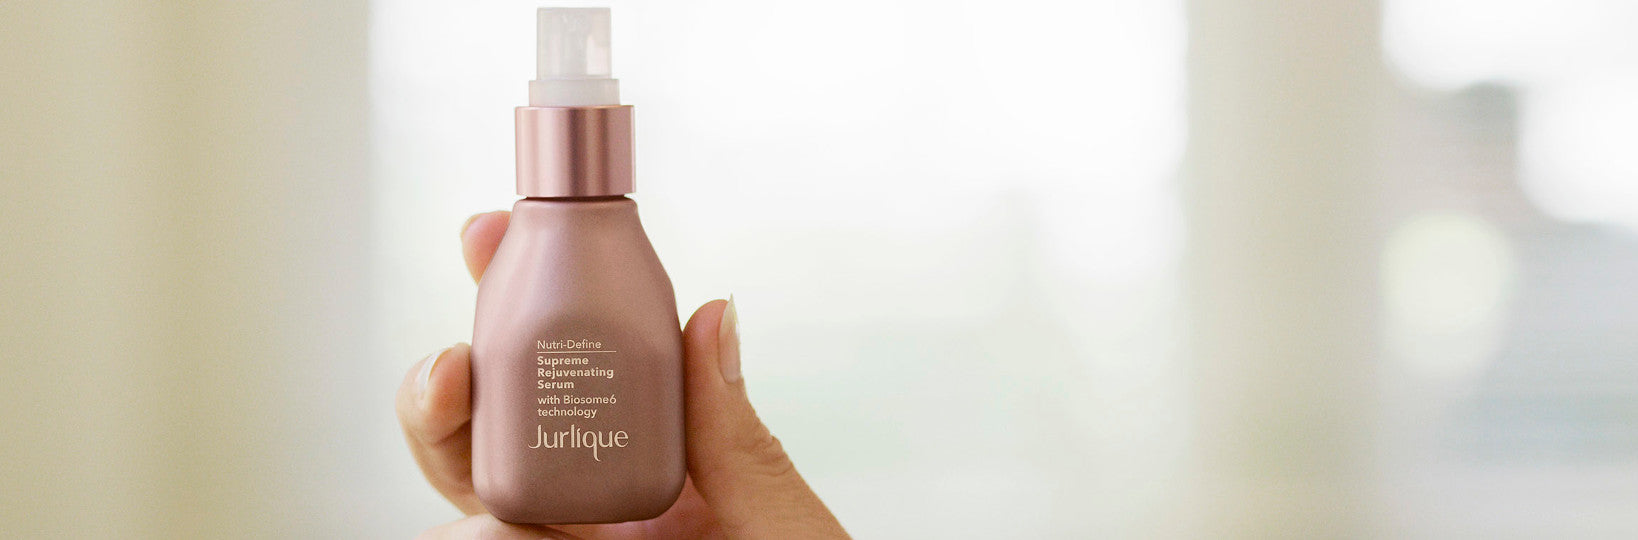 Woman's hand holding bottle of Jurlique Nutri-Define Supreme Rejuvenating Serum